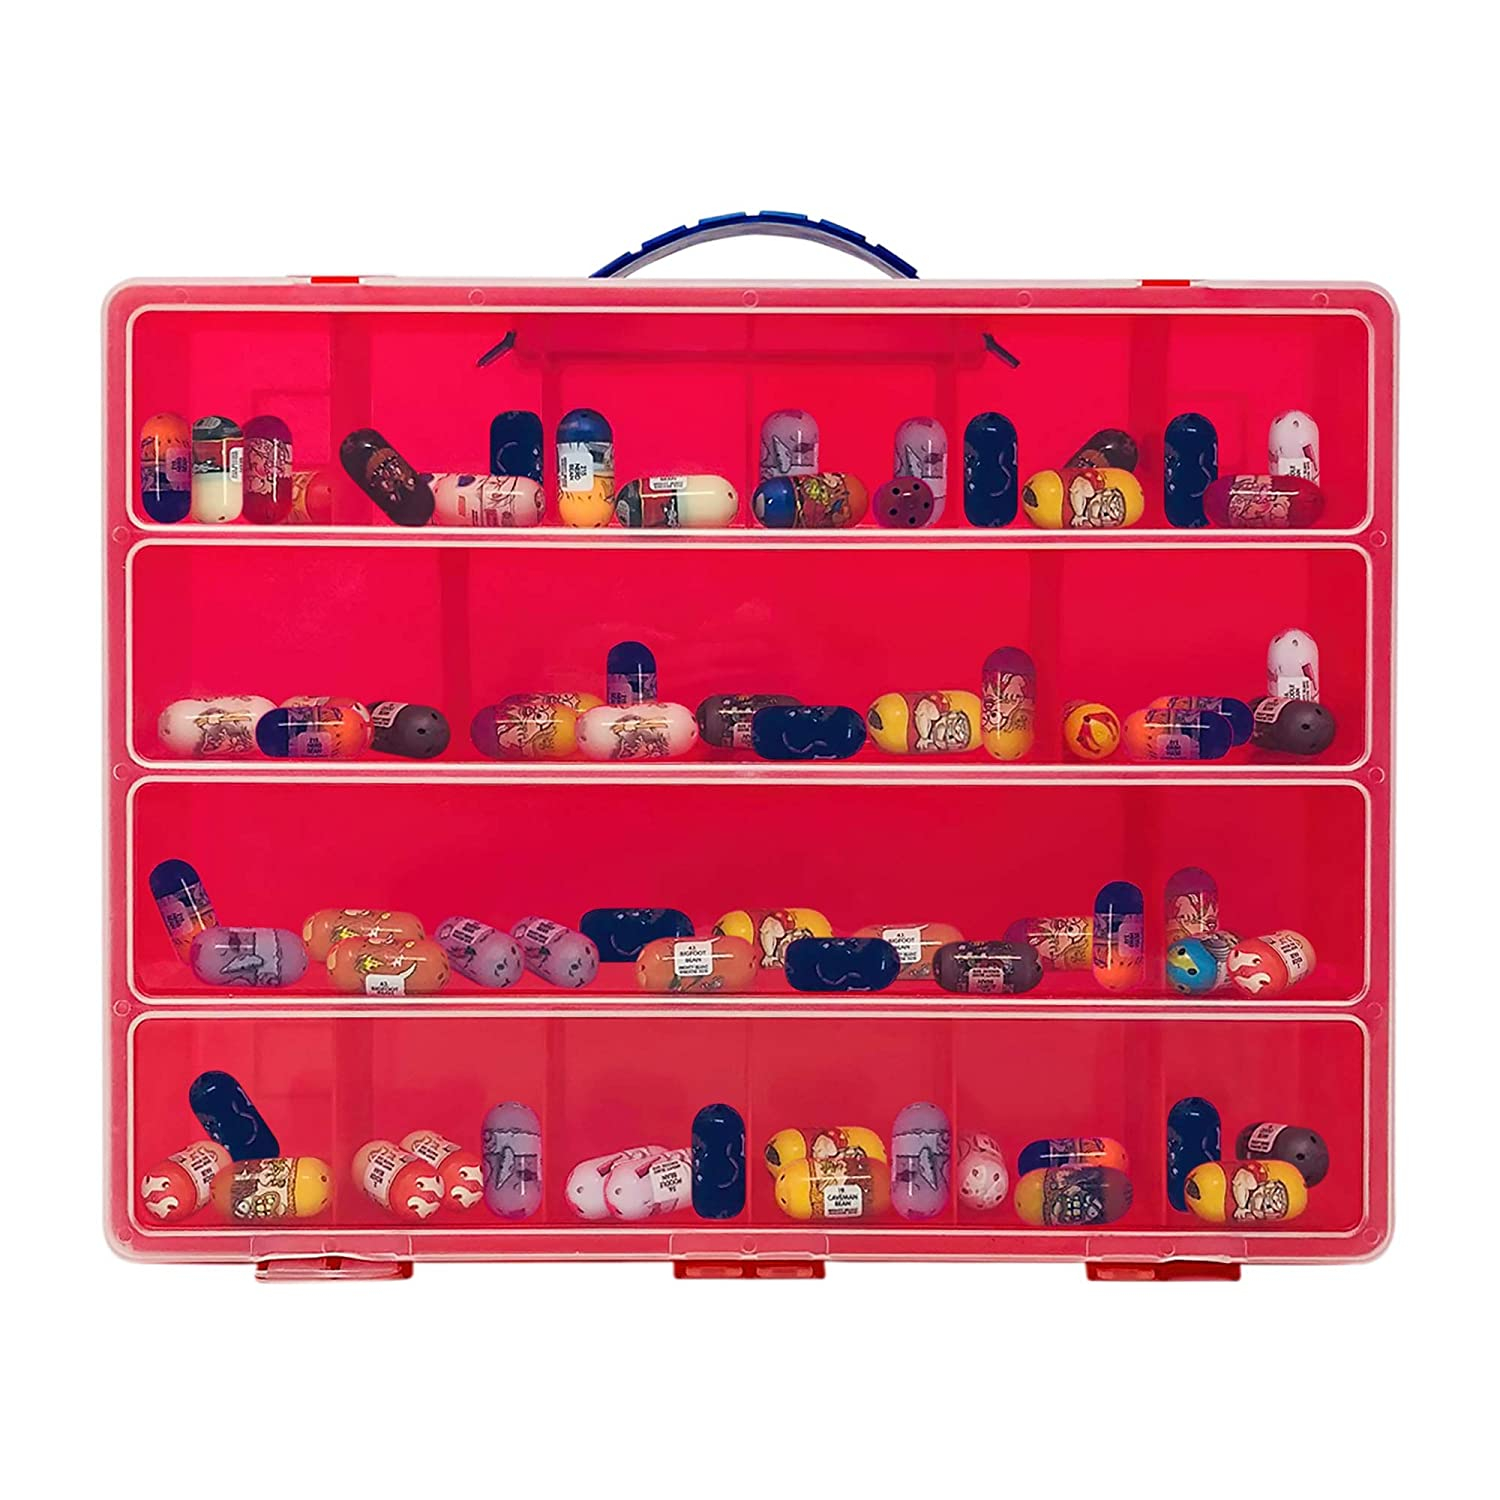 Compatible with Mighty Beanz This Box is Not Created by Mighty Beanz Red Life Made Better Carrying Case Toy Figure Organizer